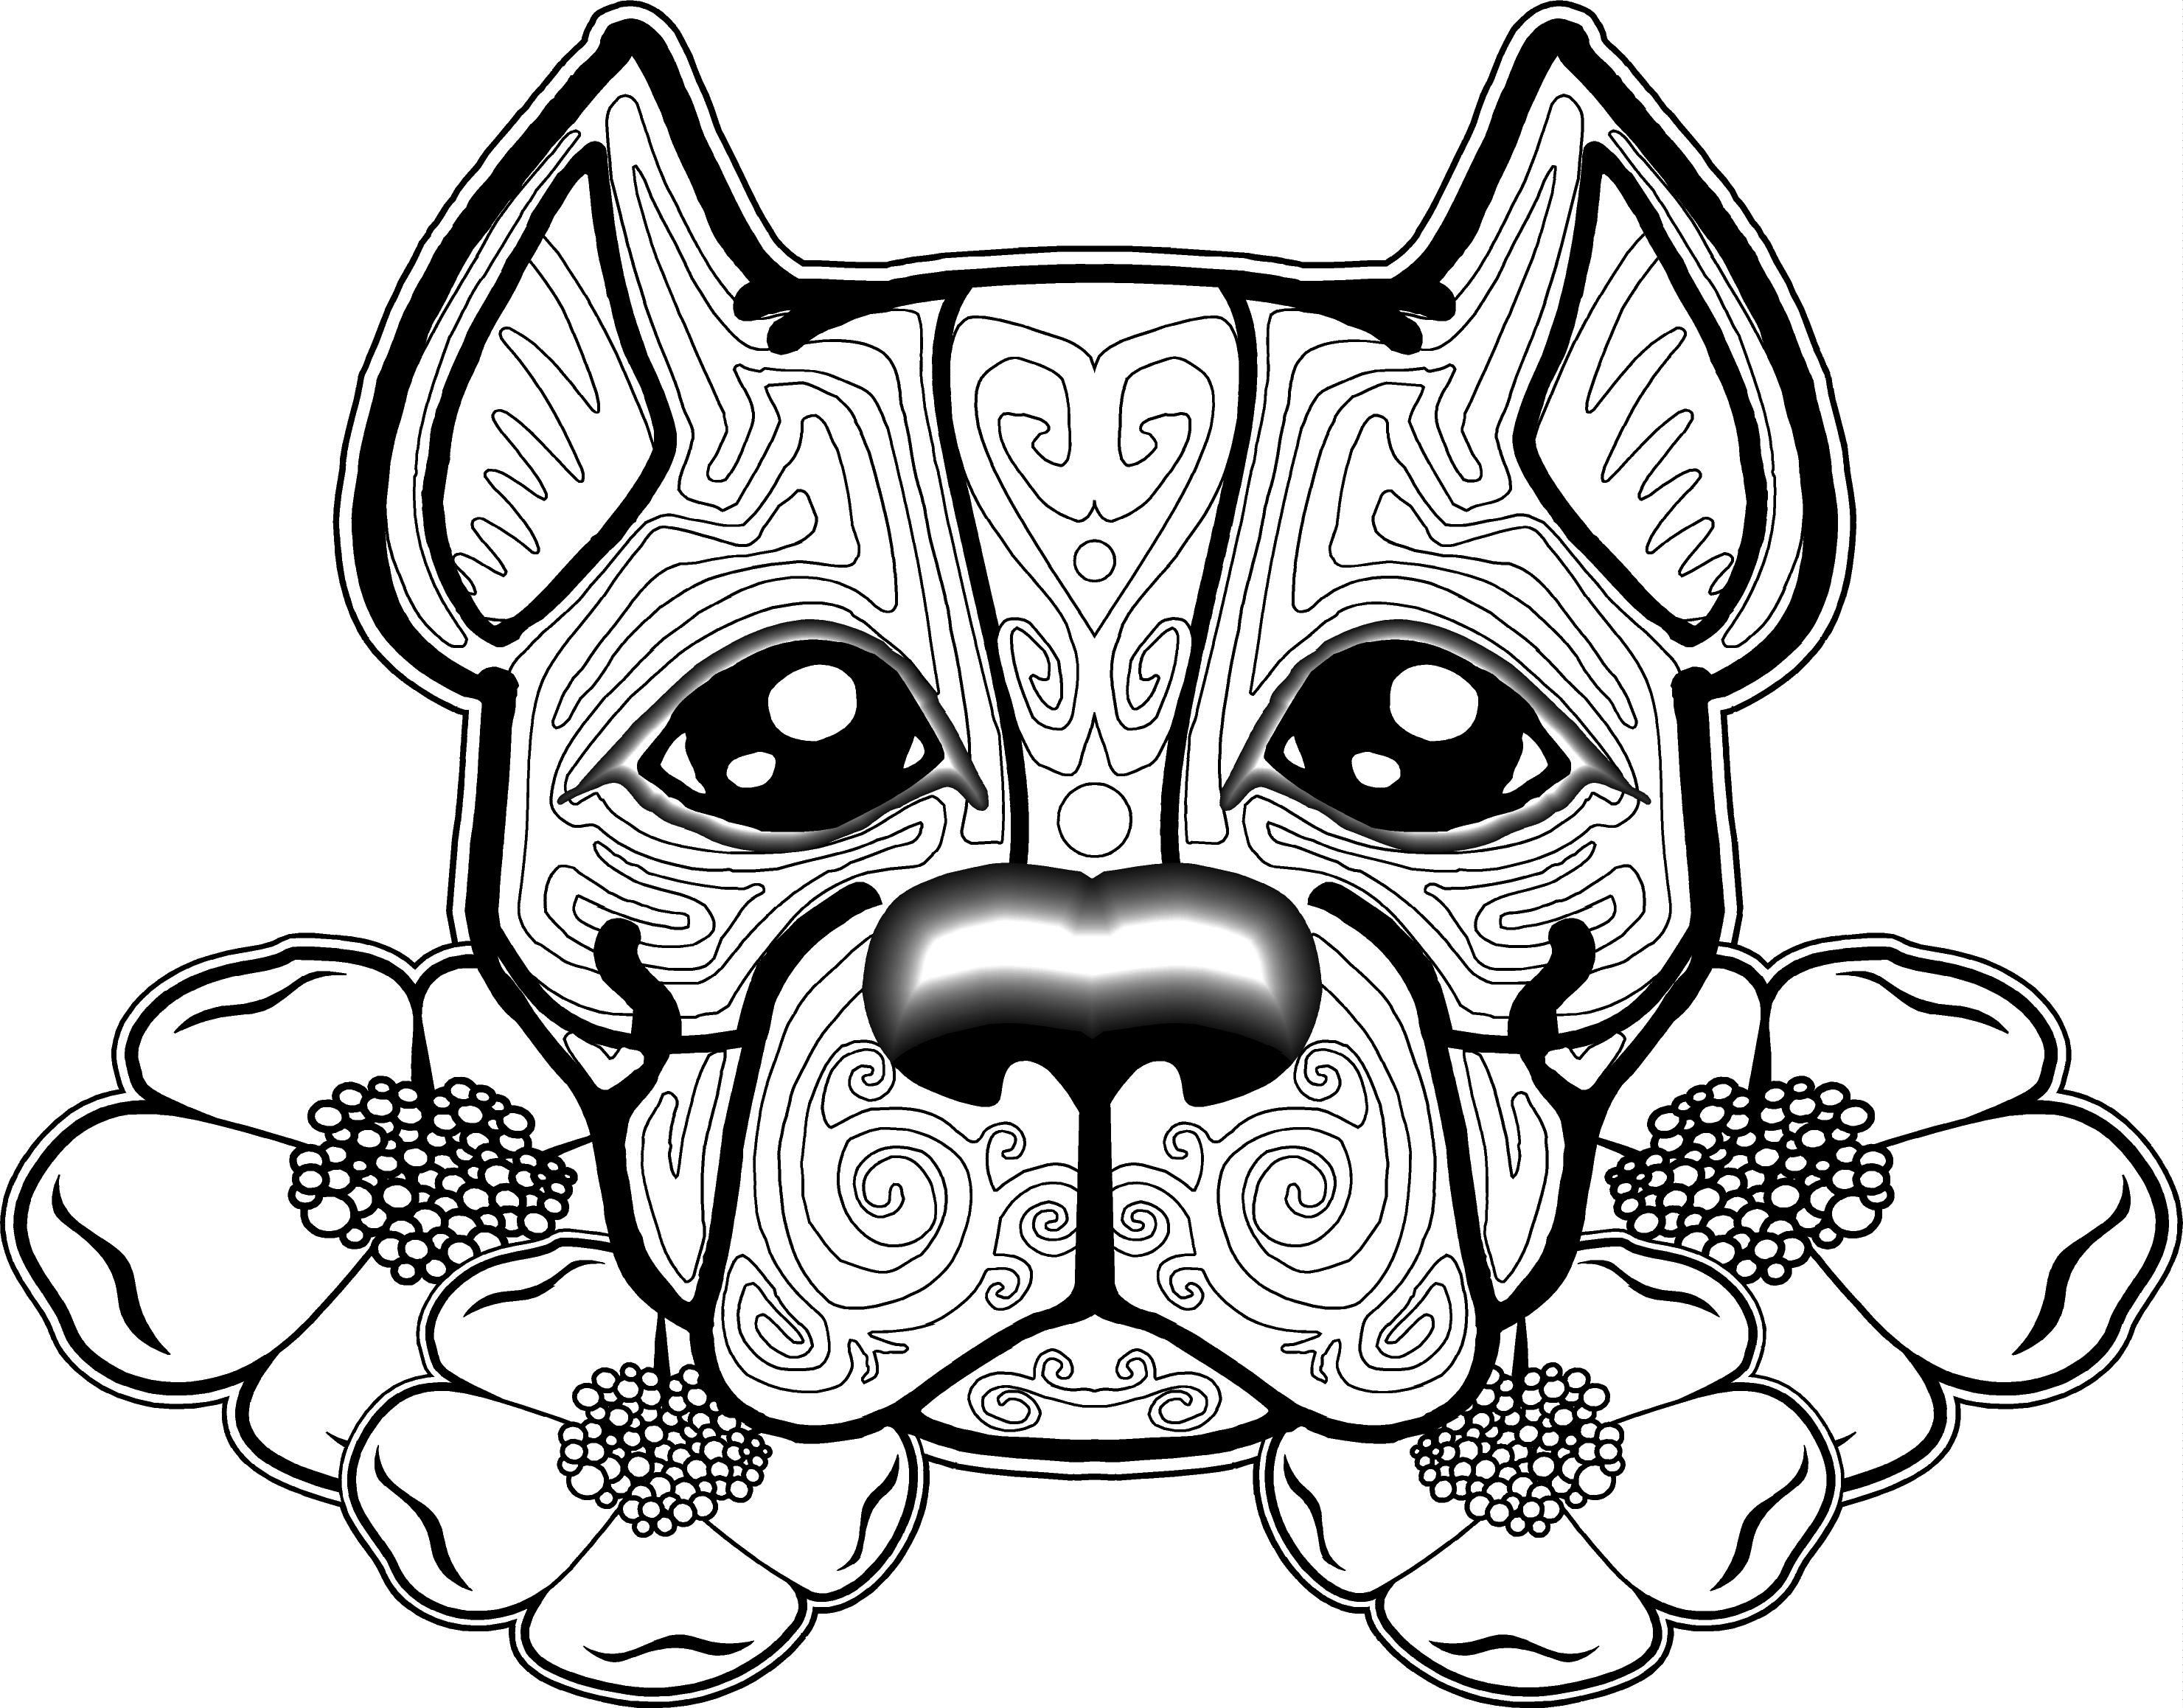 free dog coloring pages for adults - Pitbull Coloring Pages